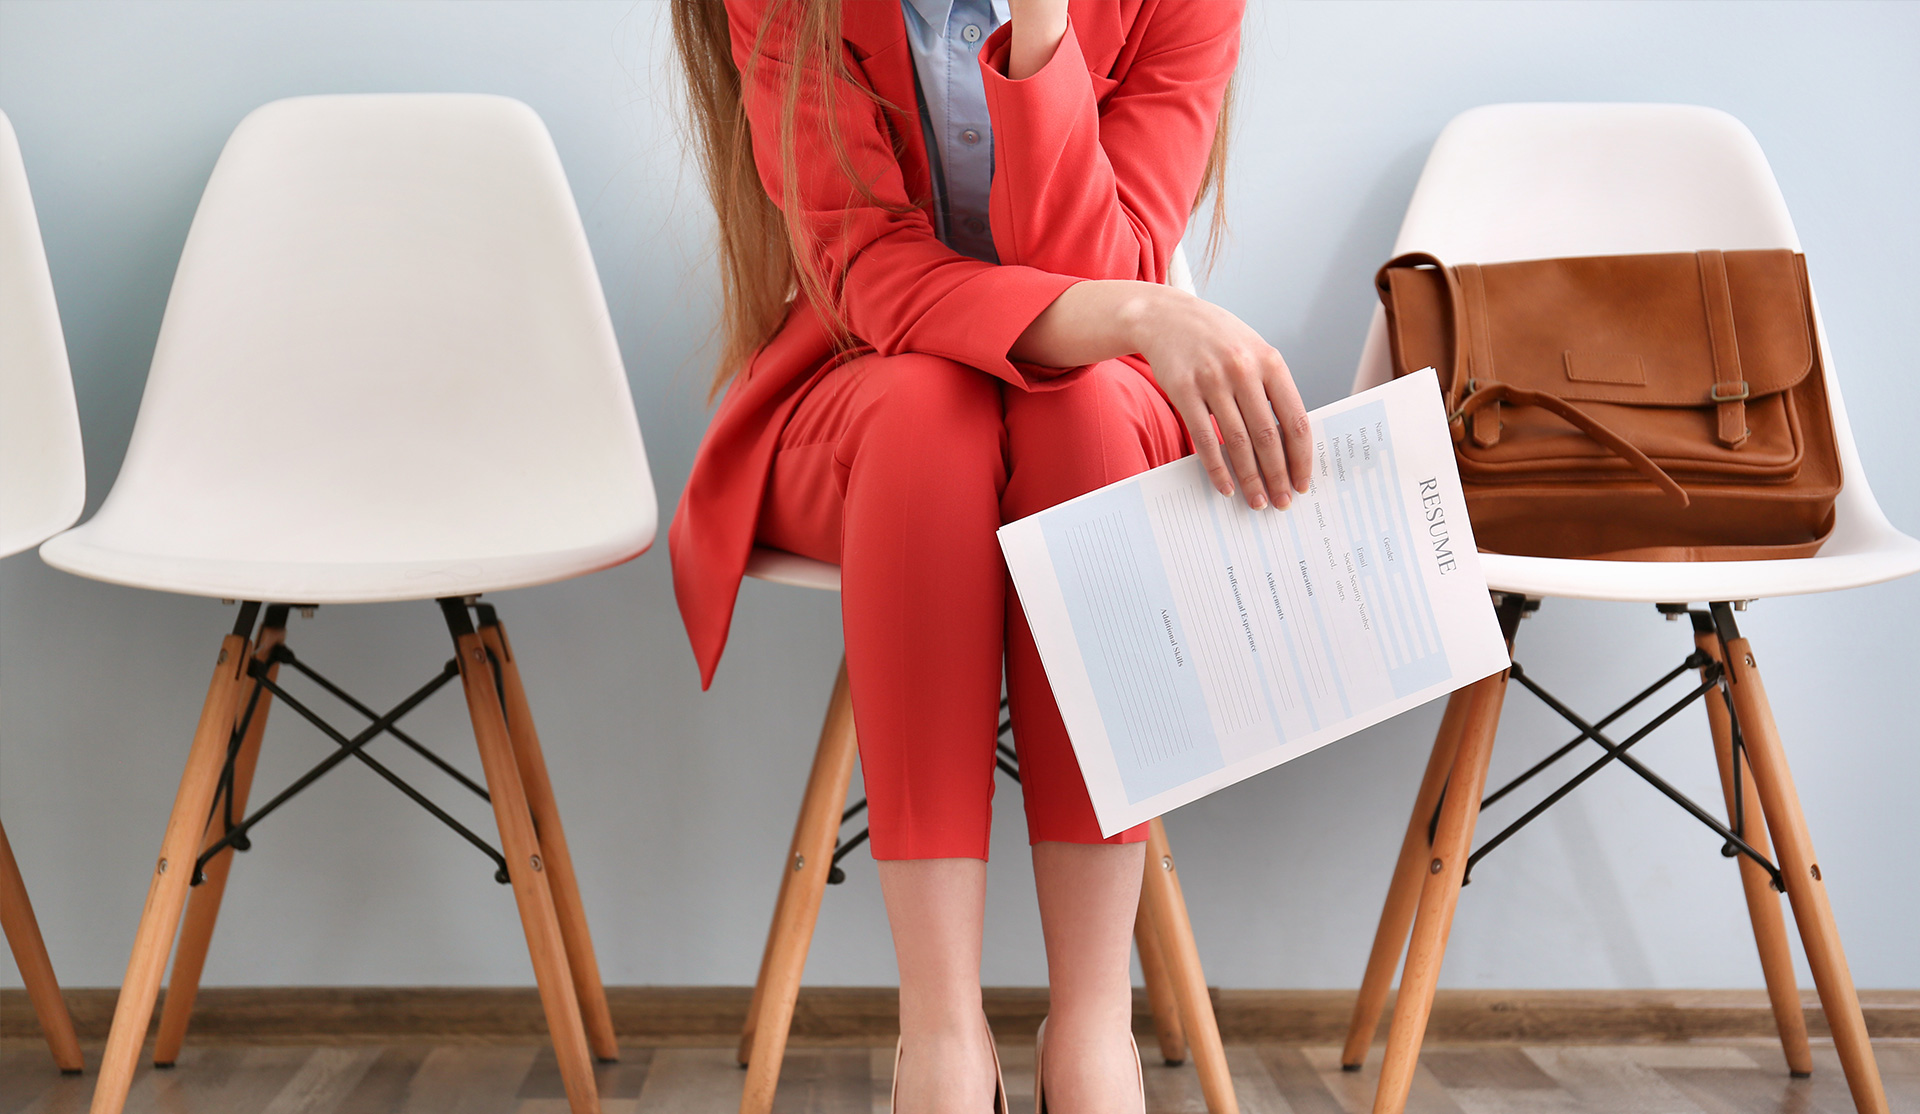 Job interview coming up? Ensure you are asking the smart questions